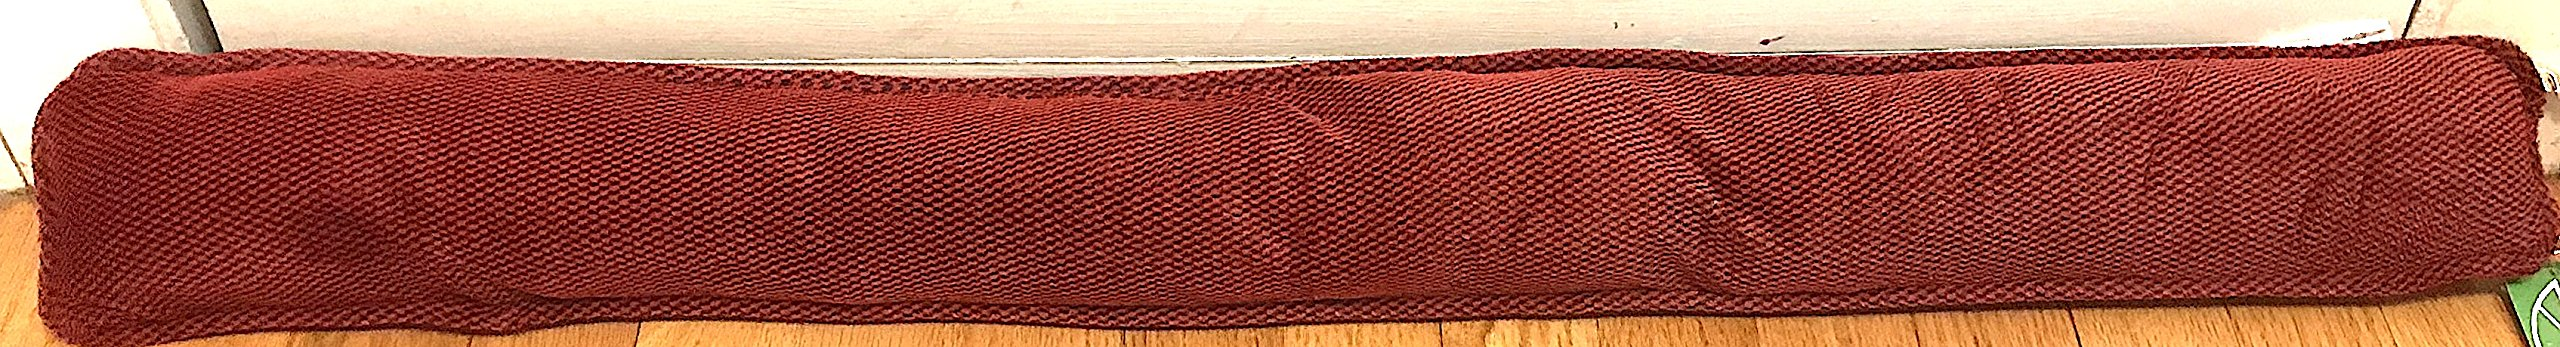 Nantucket Home 36'' inch Draft Blocker with Rope Handle: Velvet Fleece Texture with Two Tone Pattern. Save Energy. Keep the Cold Out! … (Red Black)